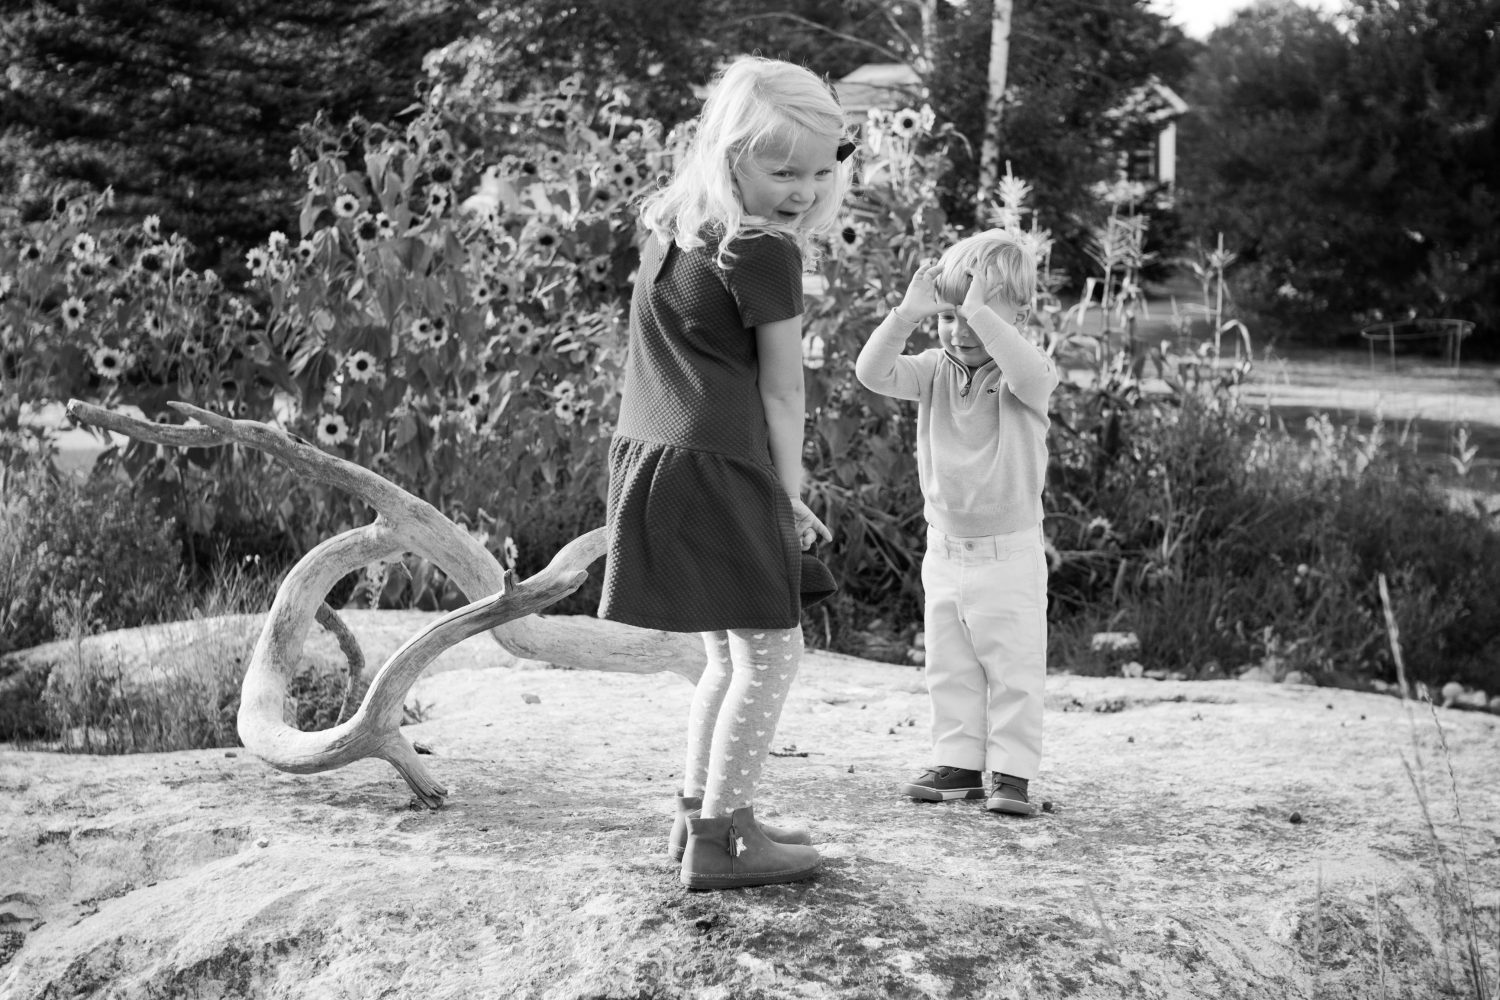 a pair of young siblings being silly during photoshoot